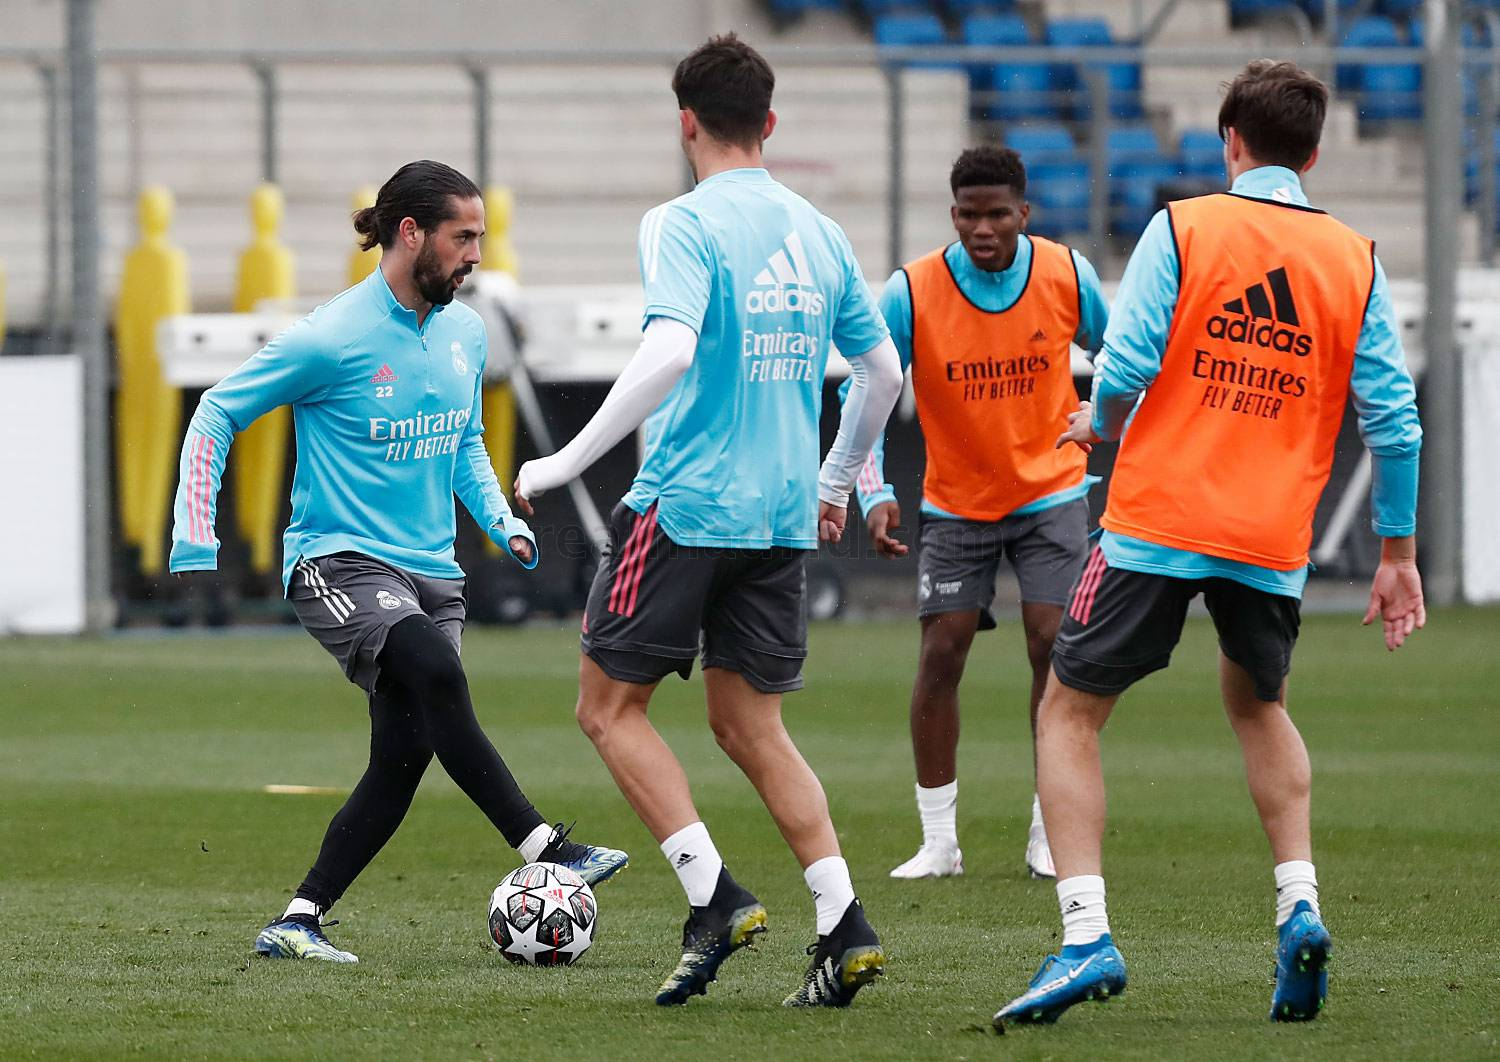 Real Madrid - Entrenamiento del Real Madrid  - 21-02-2021